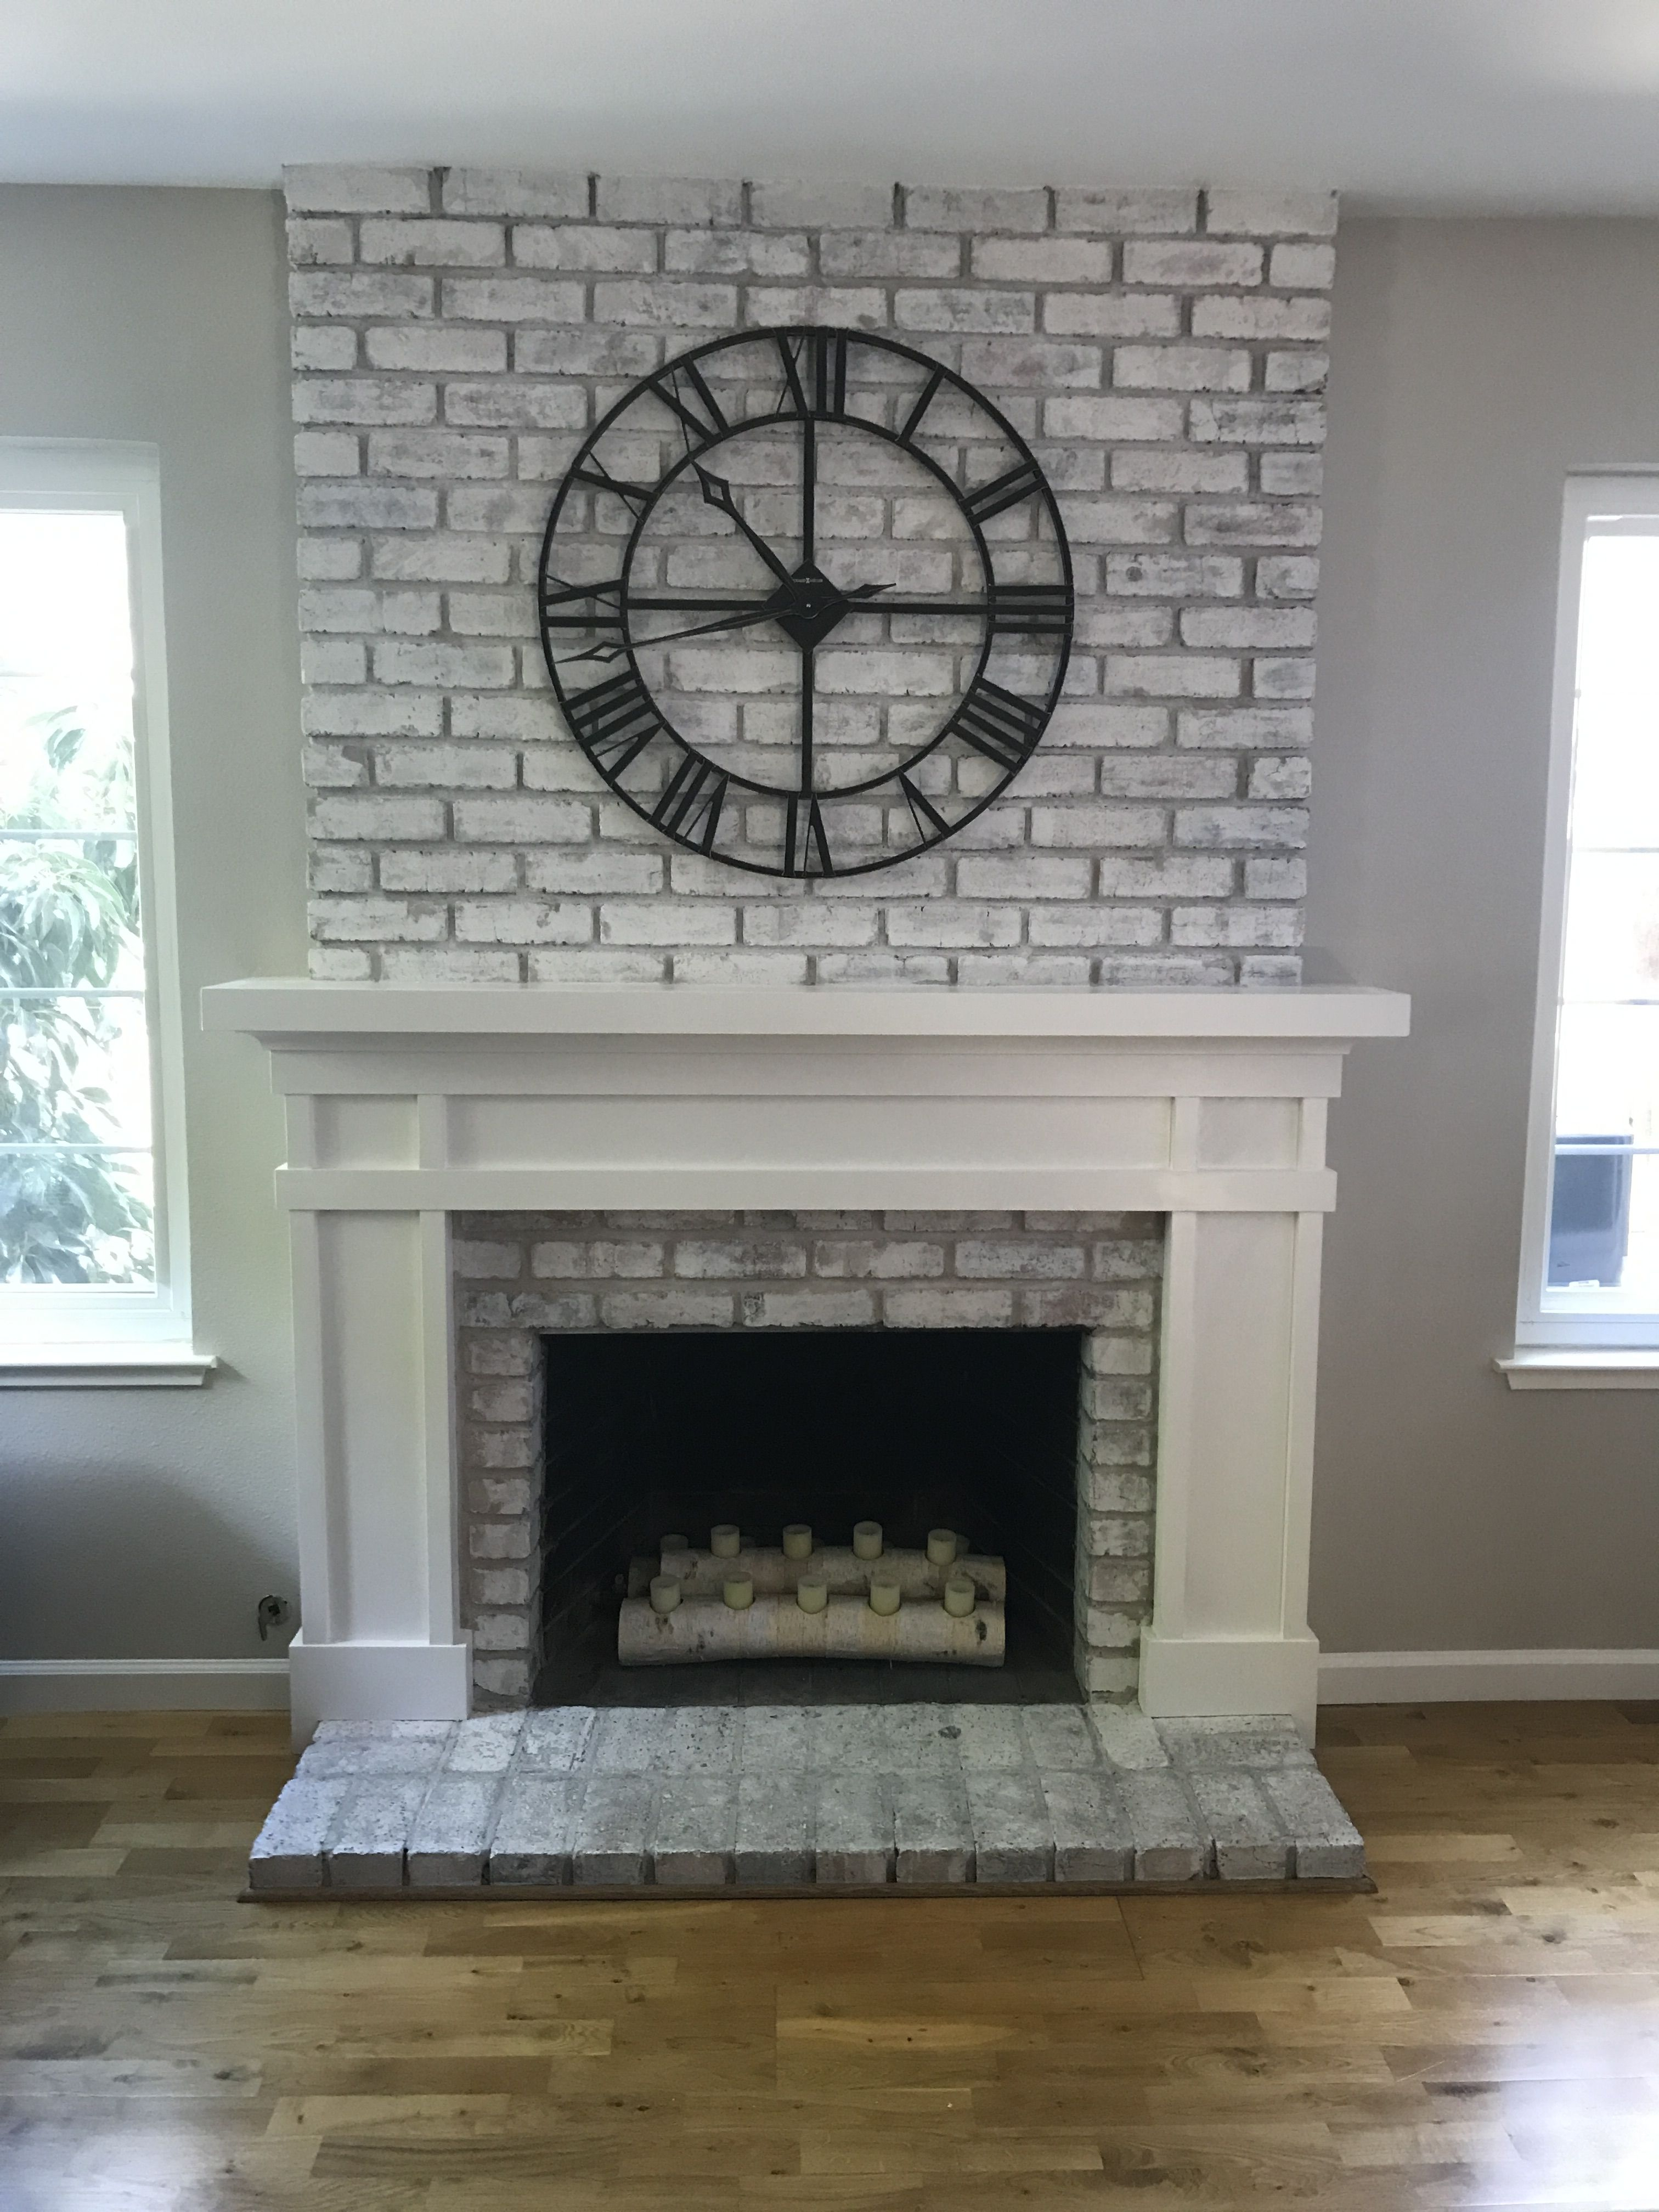 Oversized Gallery Lacy Quartz 32 Wall Clock Fireplace Remodel White Brick Fireplace Brick Exterior House